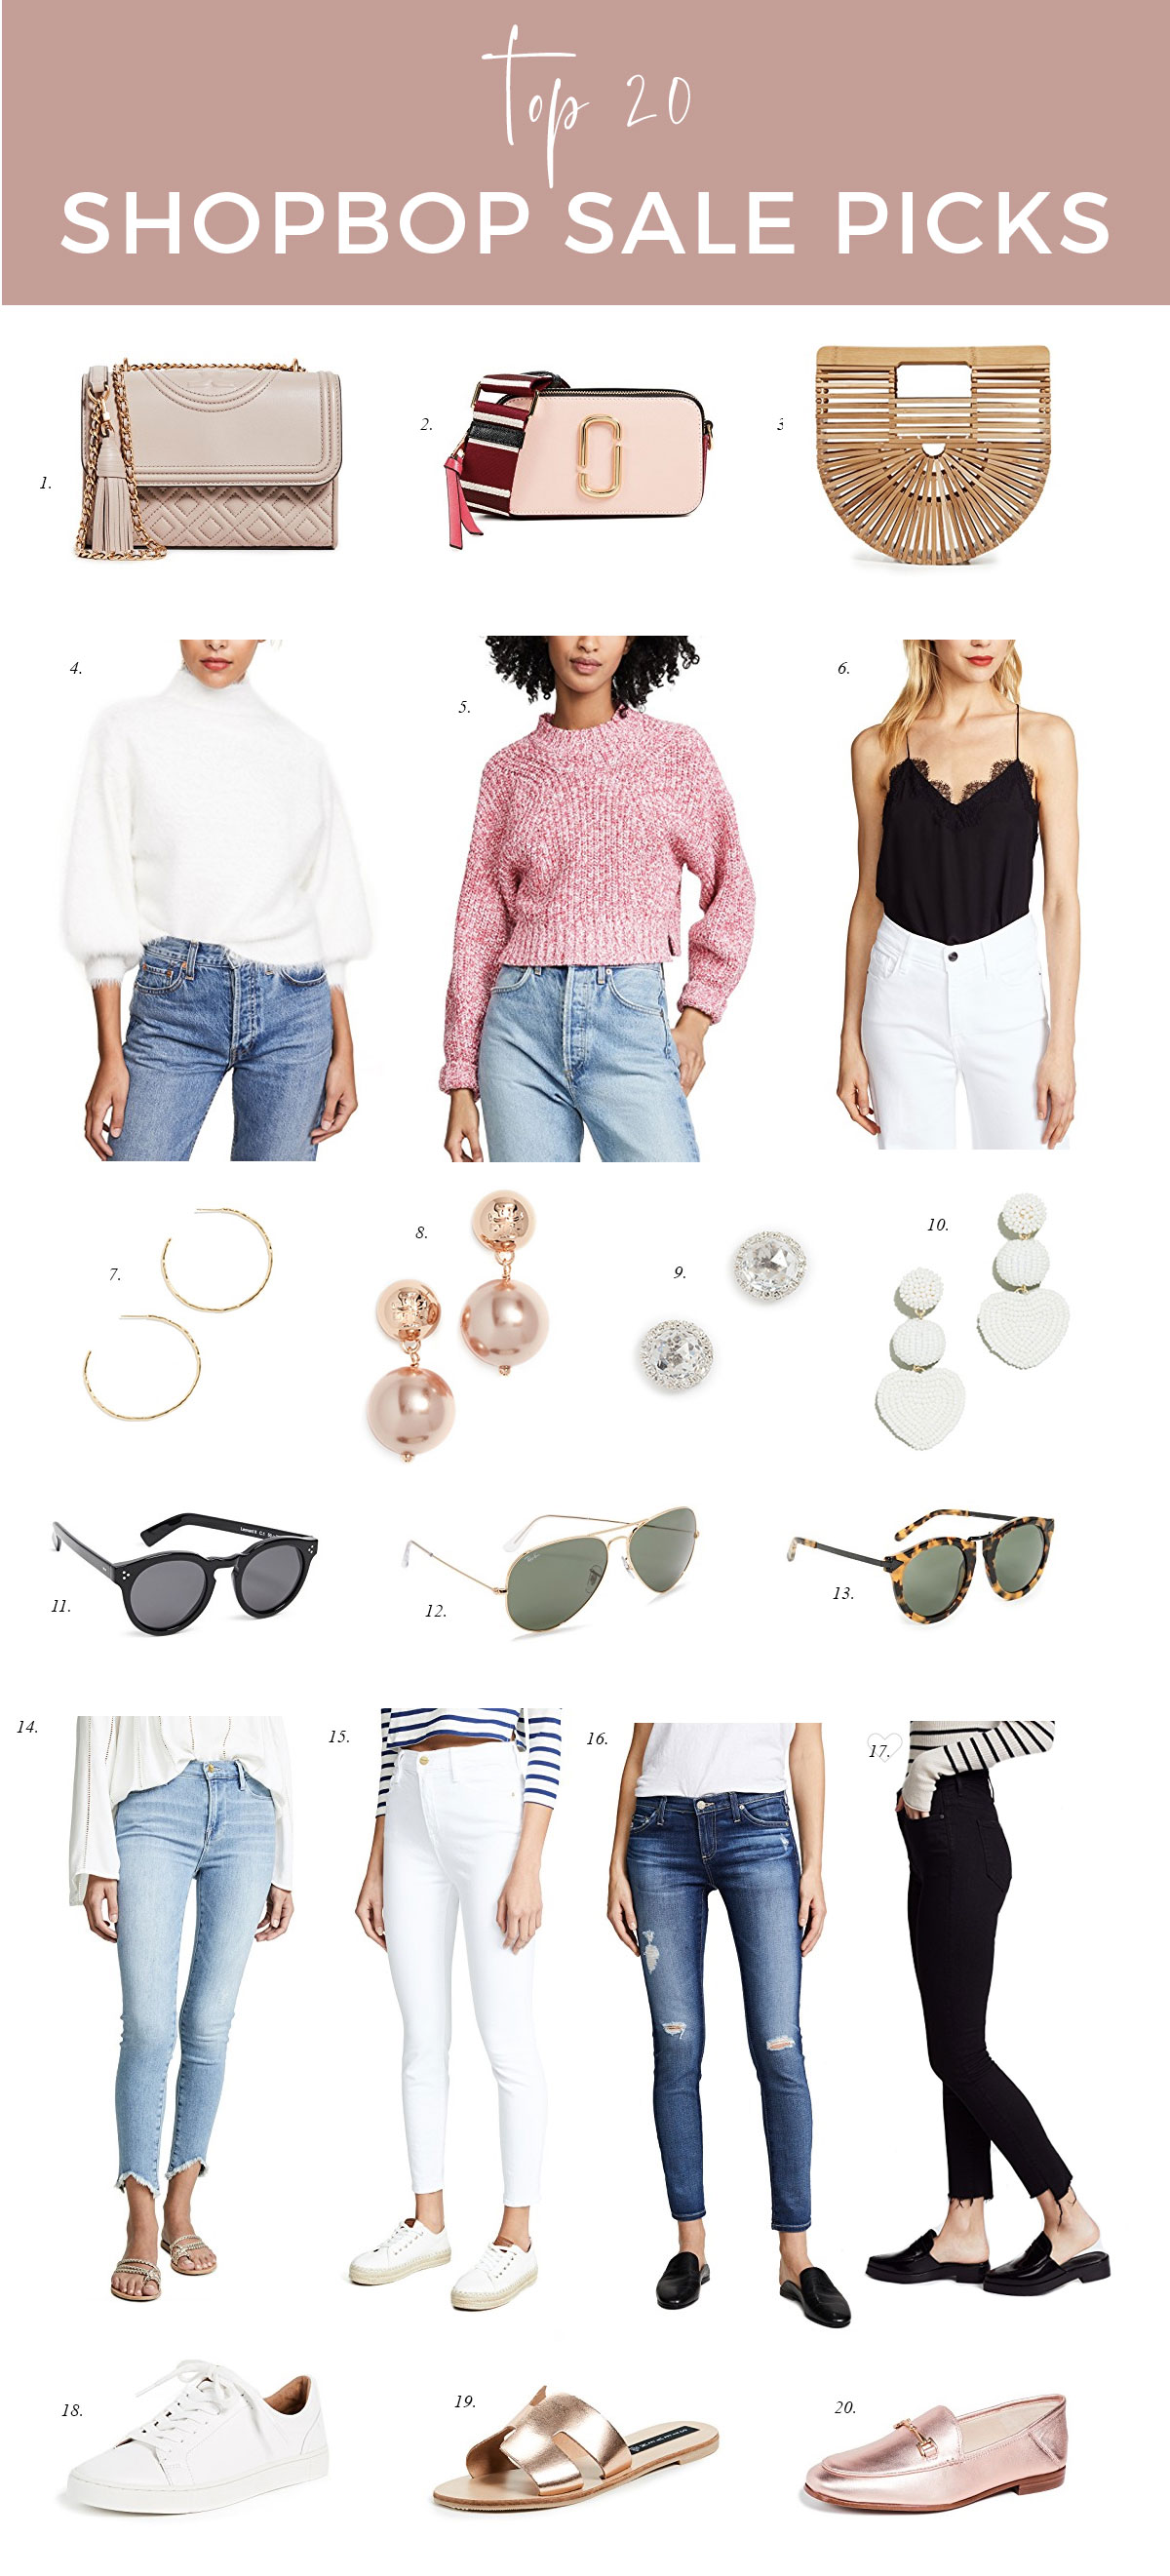 top-20-best-shopbop-sale-picks-coupon-code-shopbop-sale-fashion-blogger